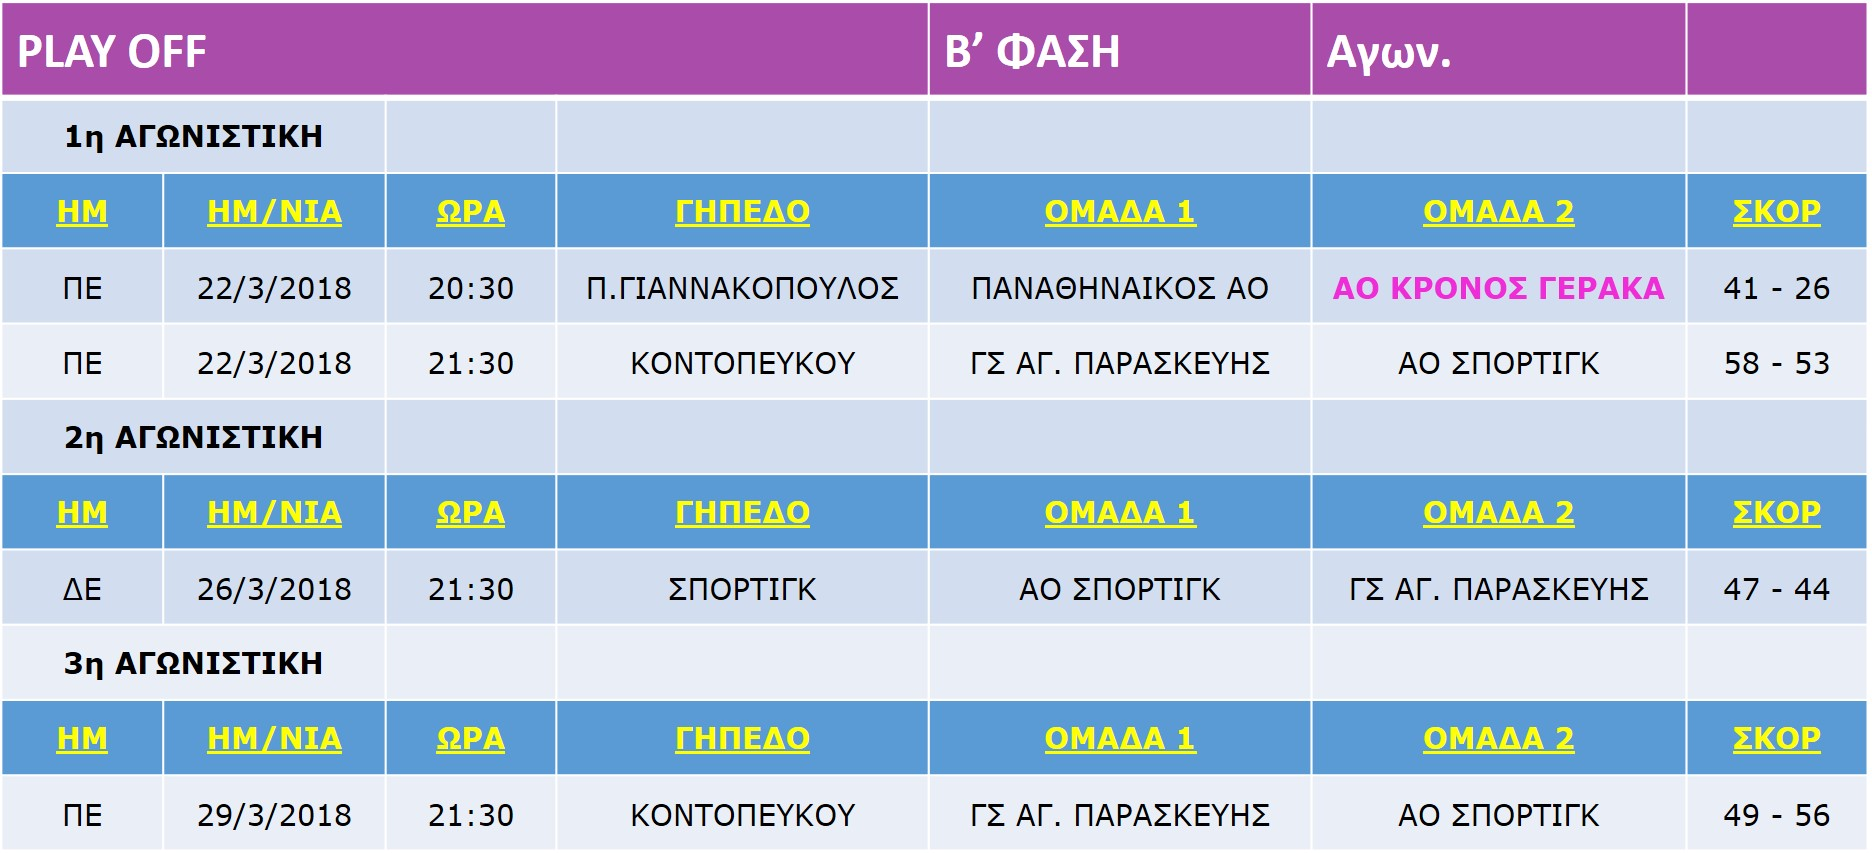 Neanides_Match_Play-OffB